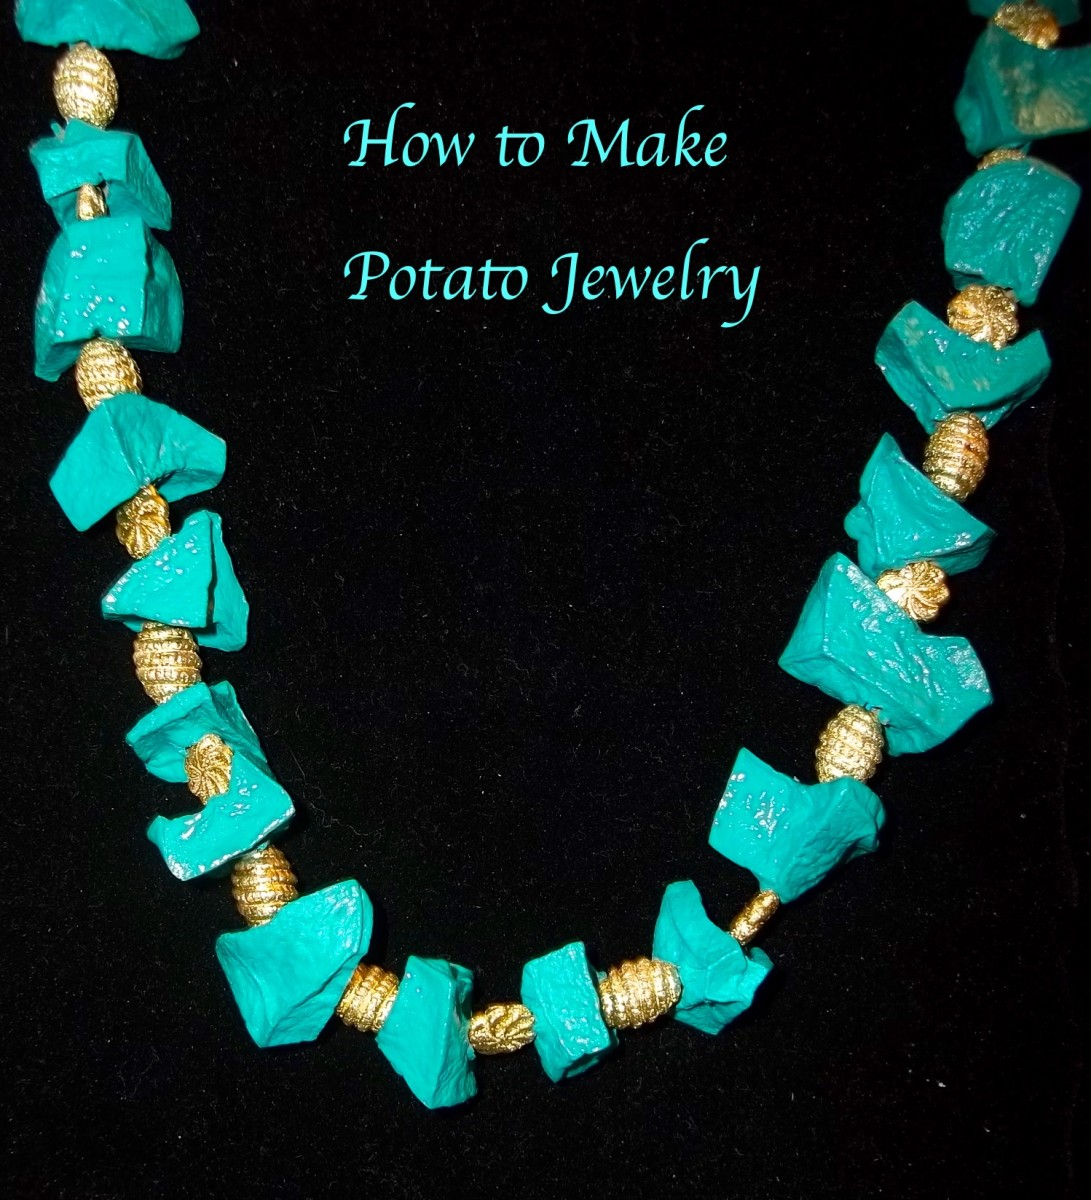 Learn how to make potato jewelry. No, it's not turquoise—it's potatoes!